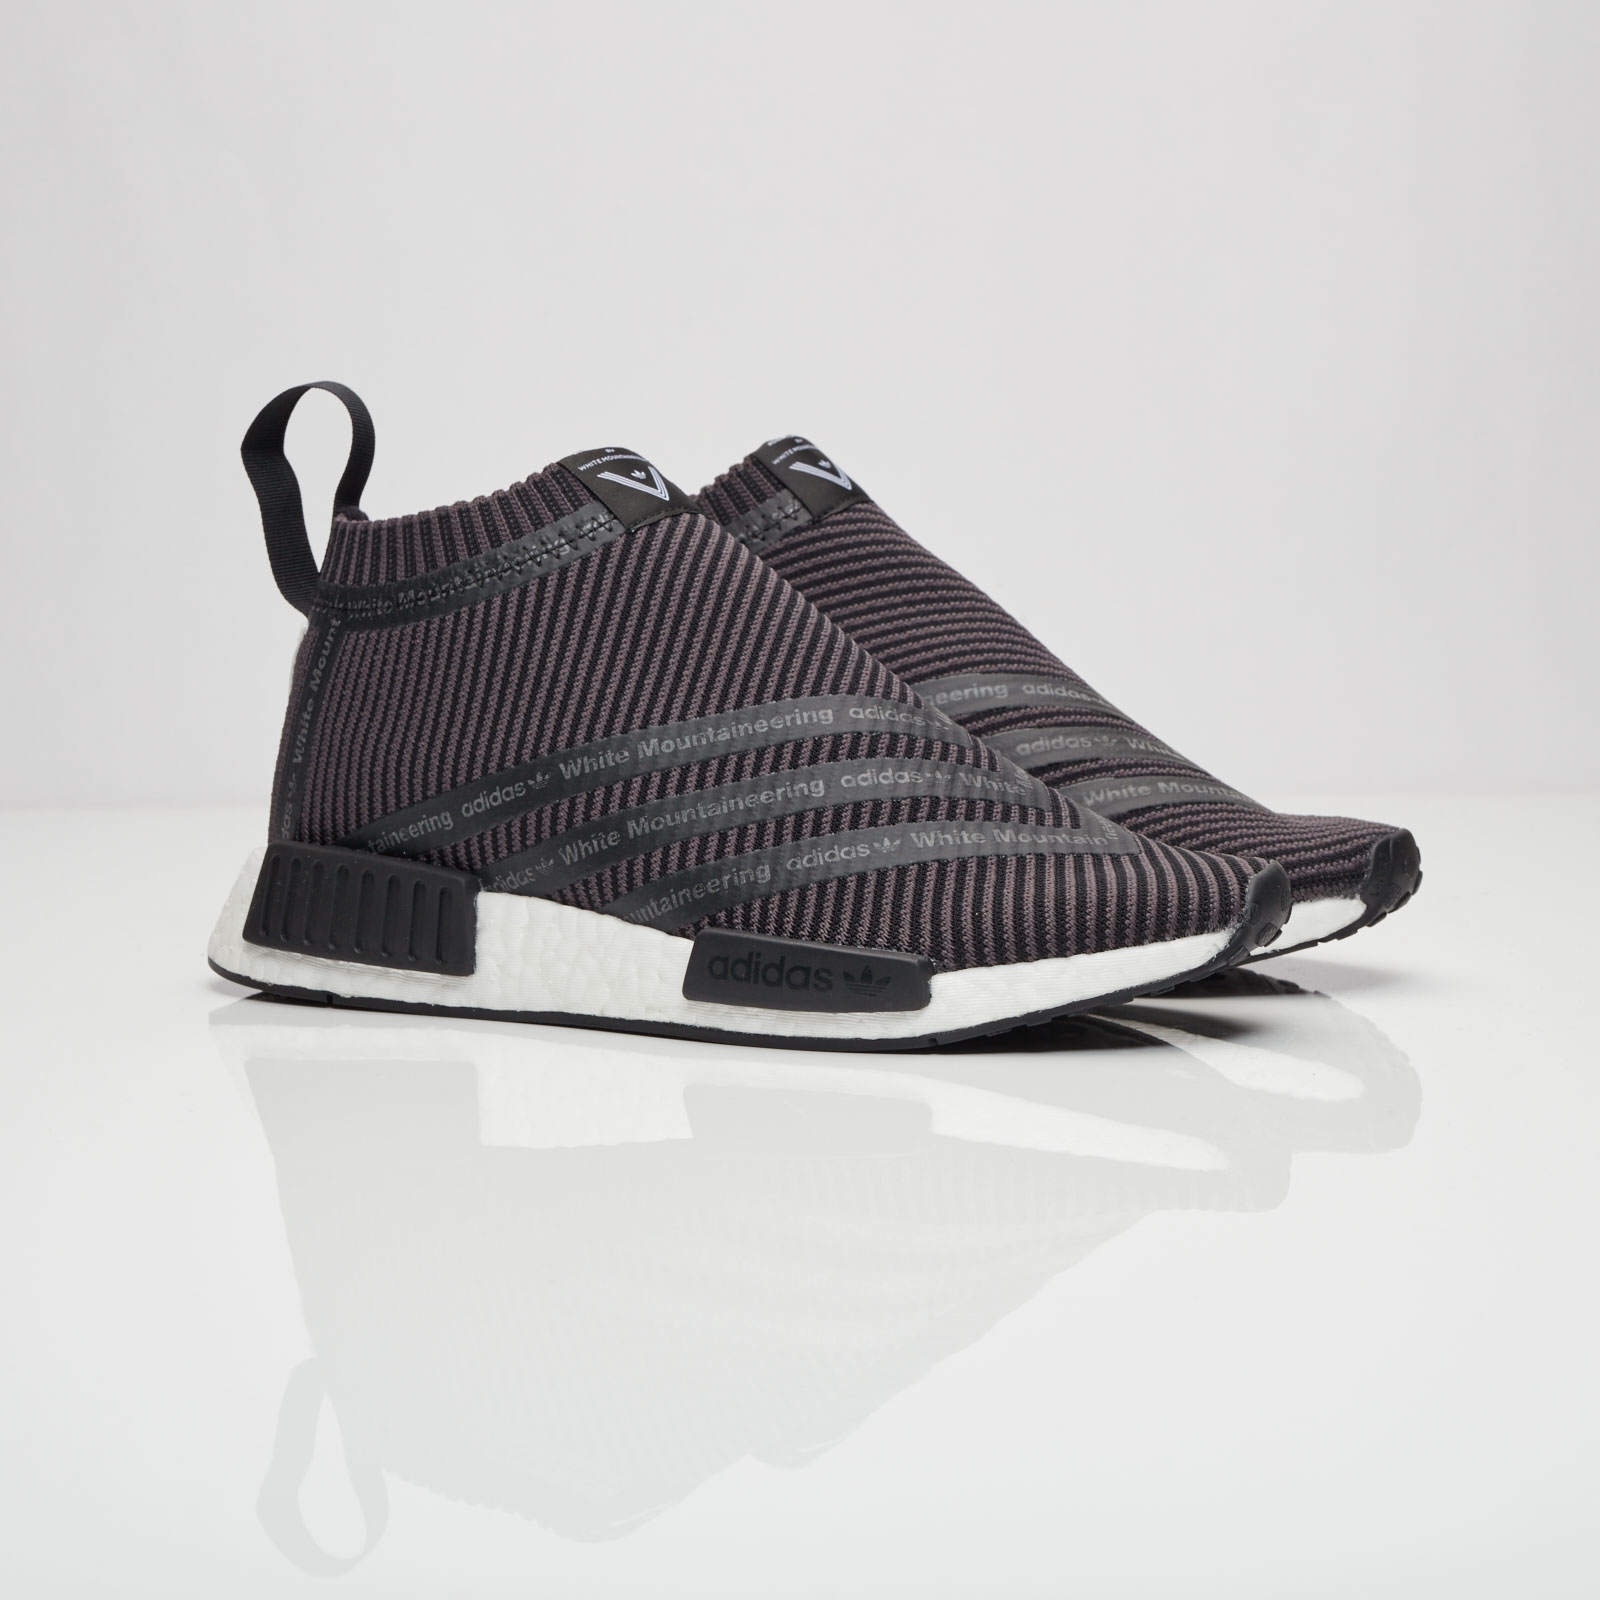 5414f263a adidas WM NMD City Sock - S80529 - Sneakersnstuff